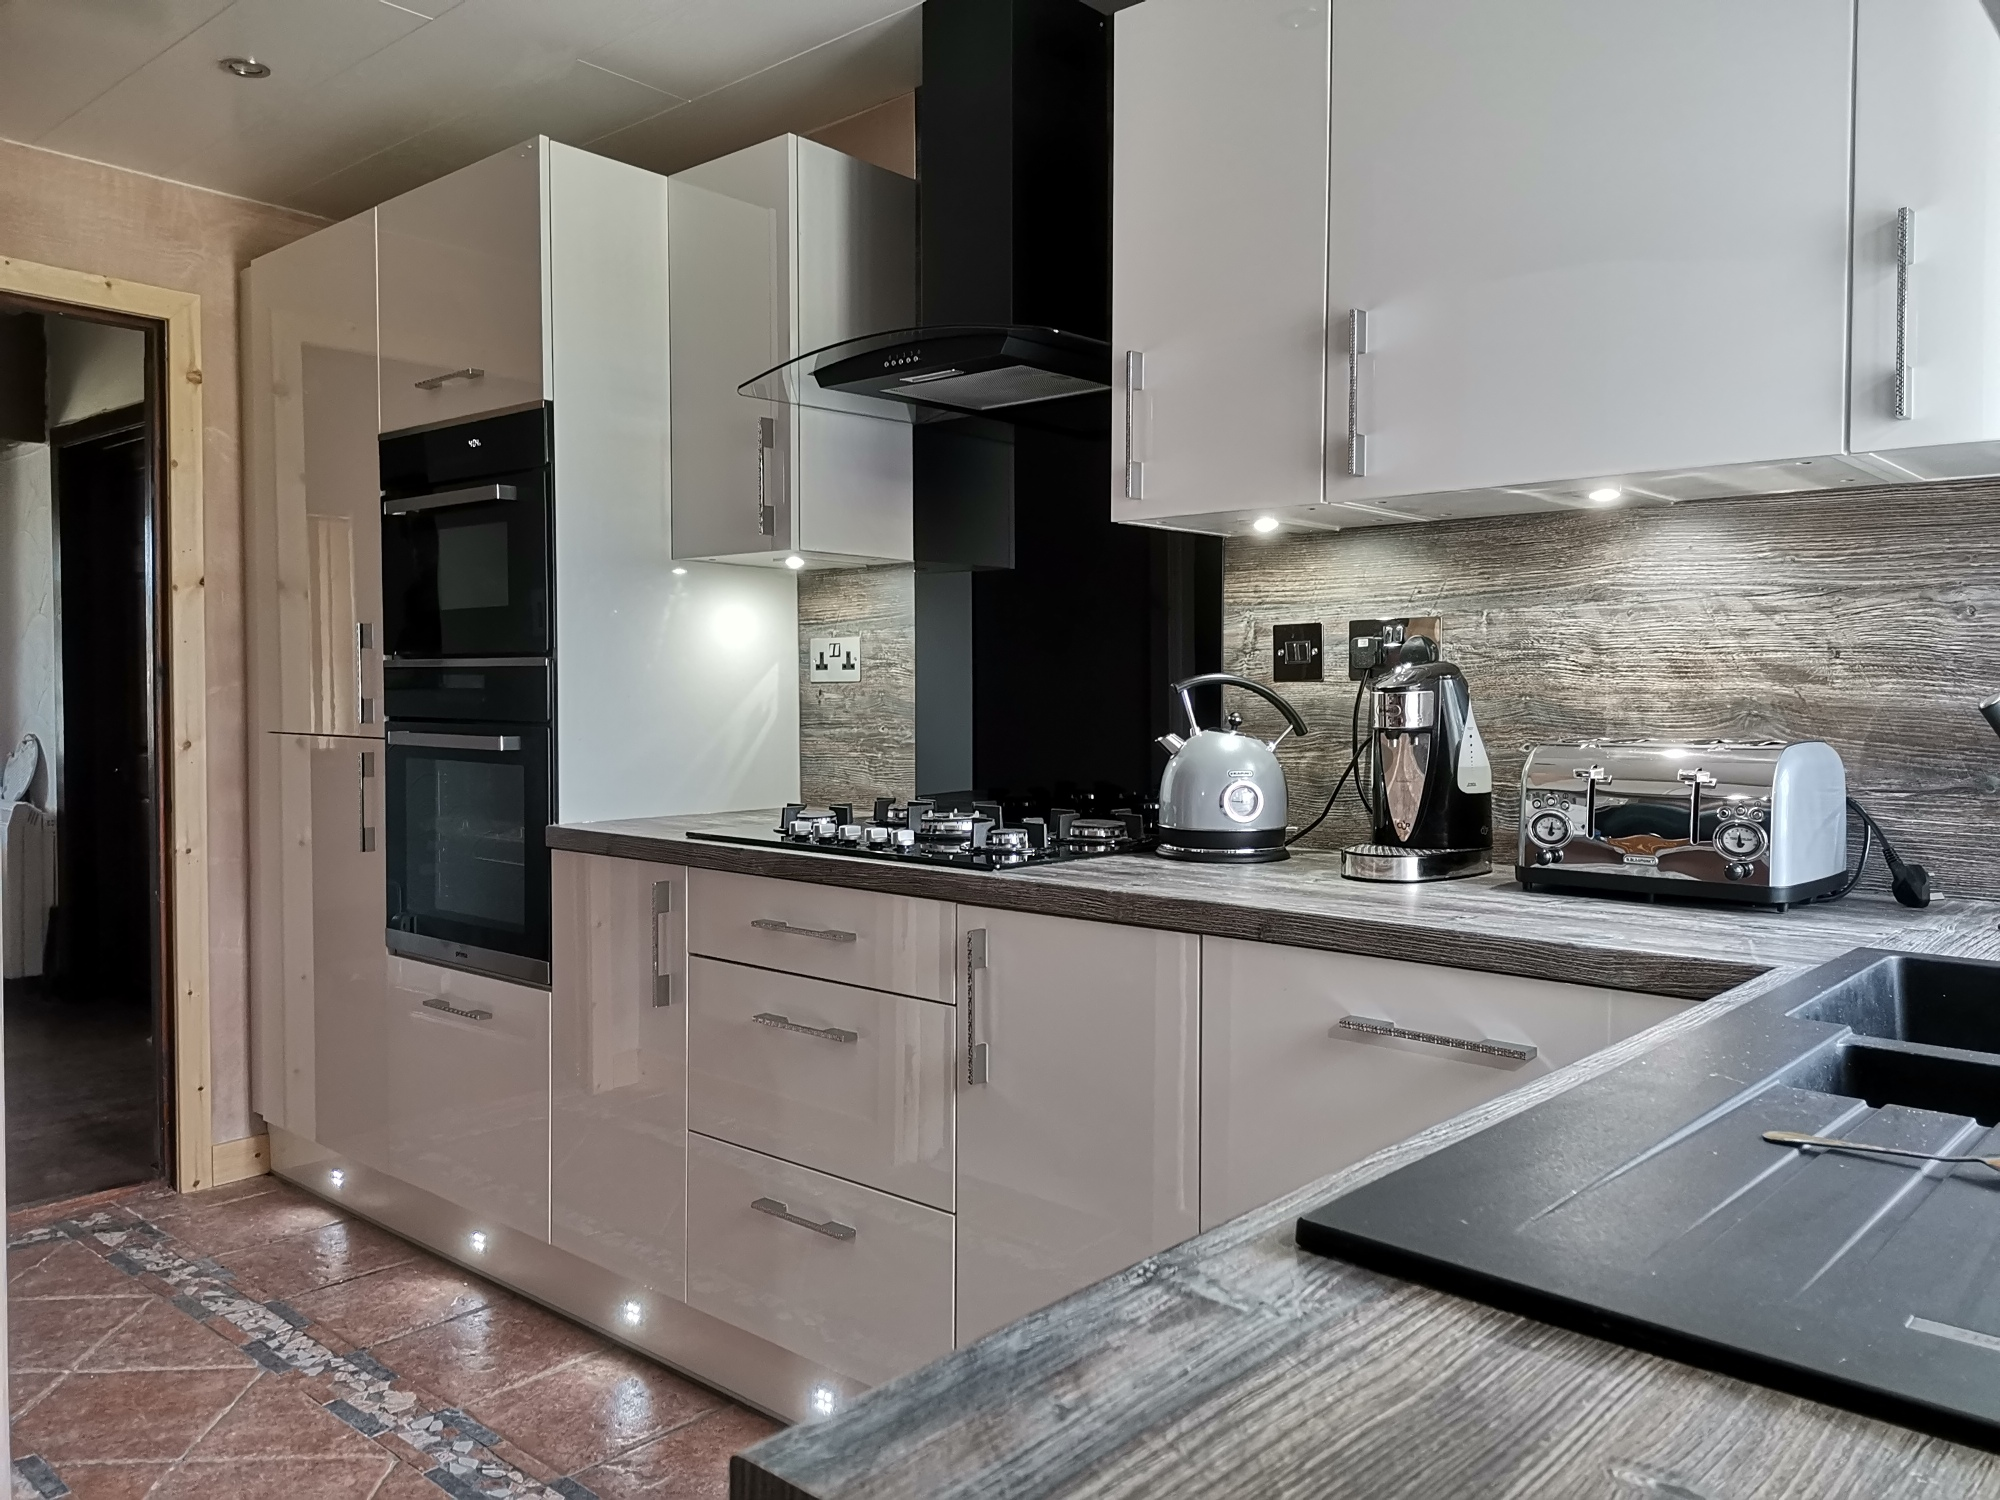 Photo showing the finished Vision kitchen for Mrs T